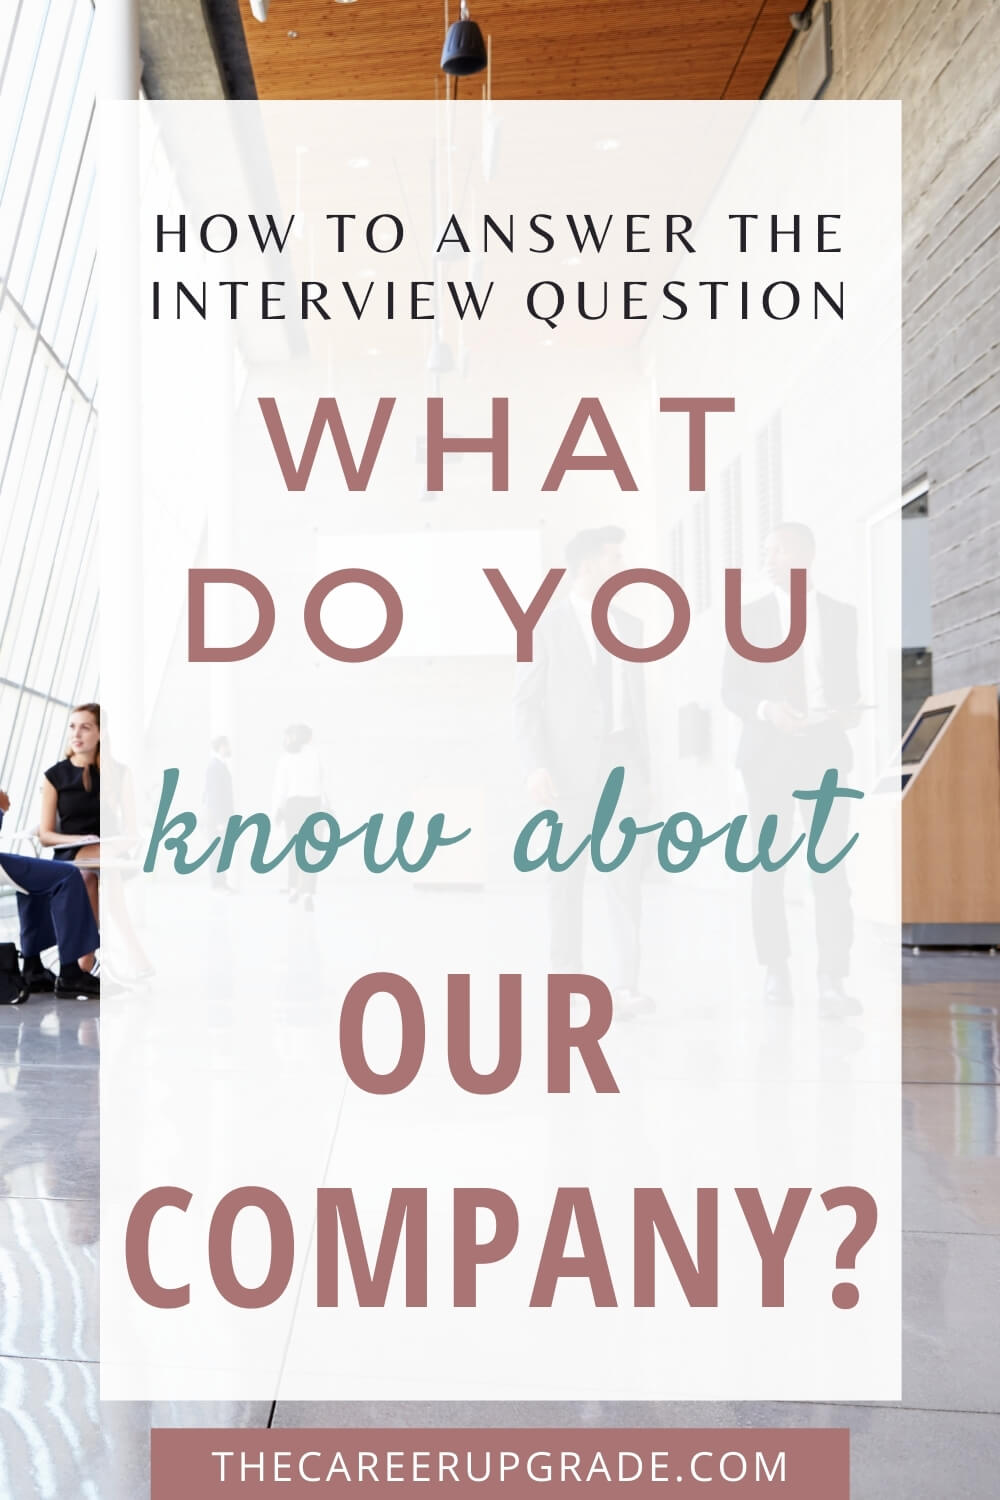 How to answer the interview question What interests you about this position?